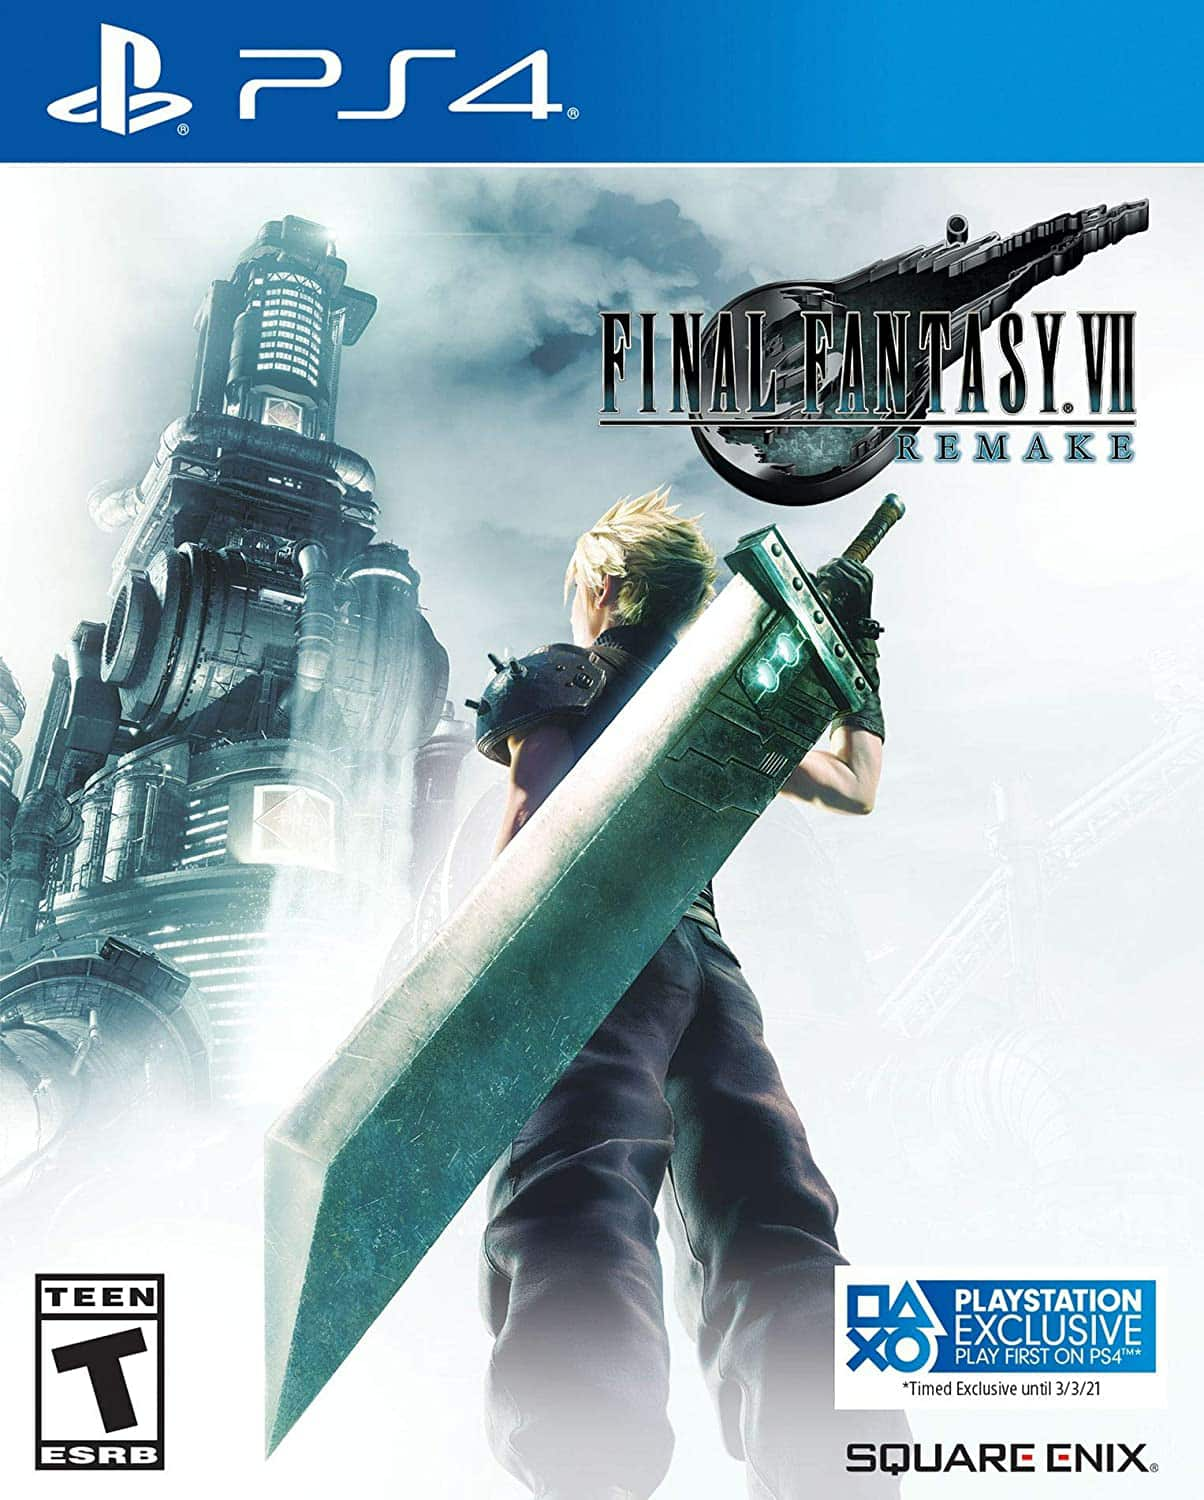 Amazon price match PS4 Final Fantasy 7 remake, $24.99, Free shipping with prime